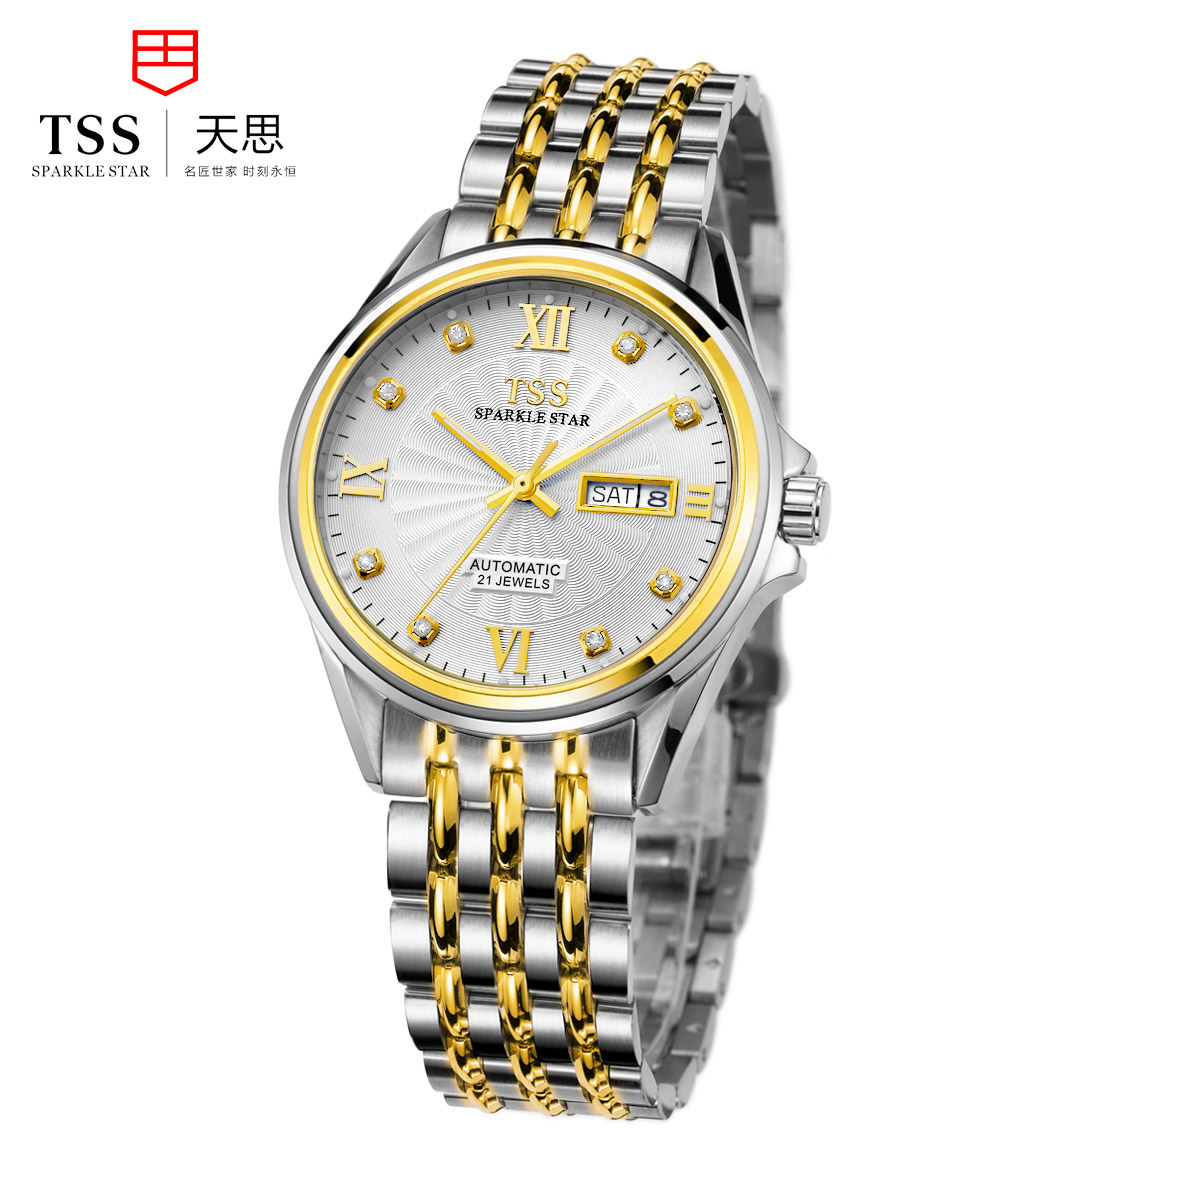 2015 Promotion Rushed Reloj Watches Tss More Counter ...